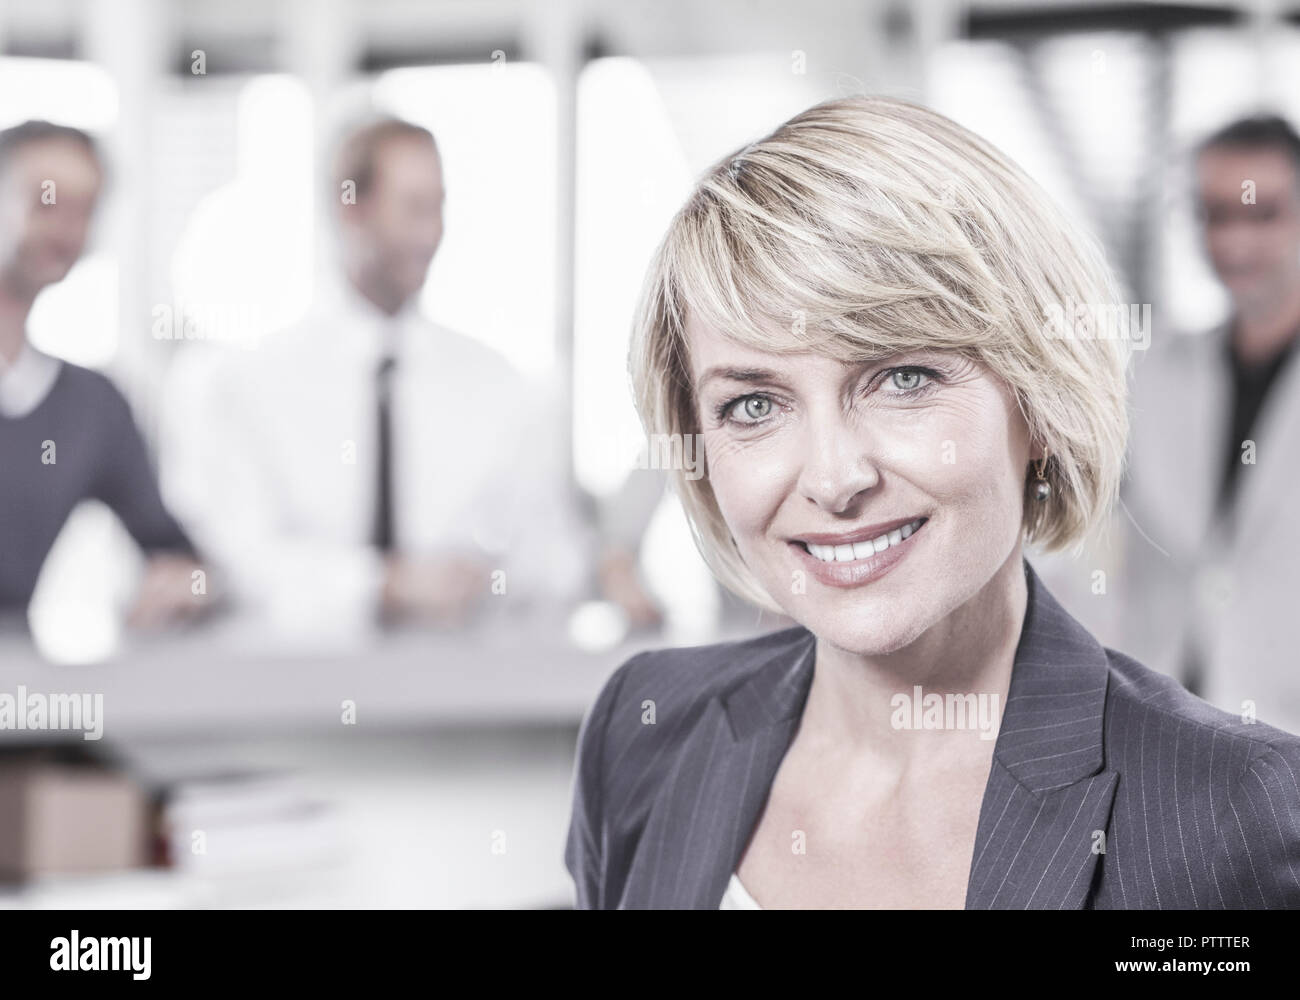 Geschaeftsfrau, Portraet (model-released) - Stock Image